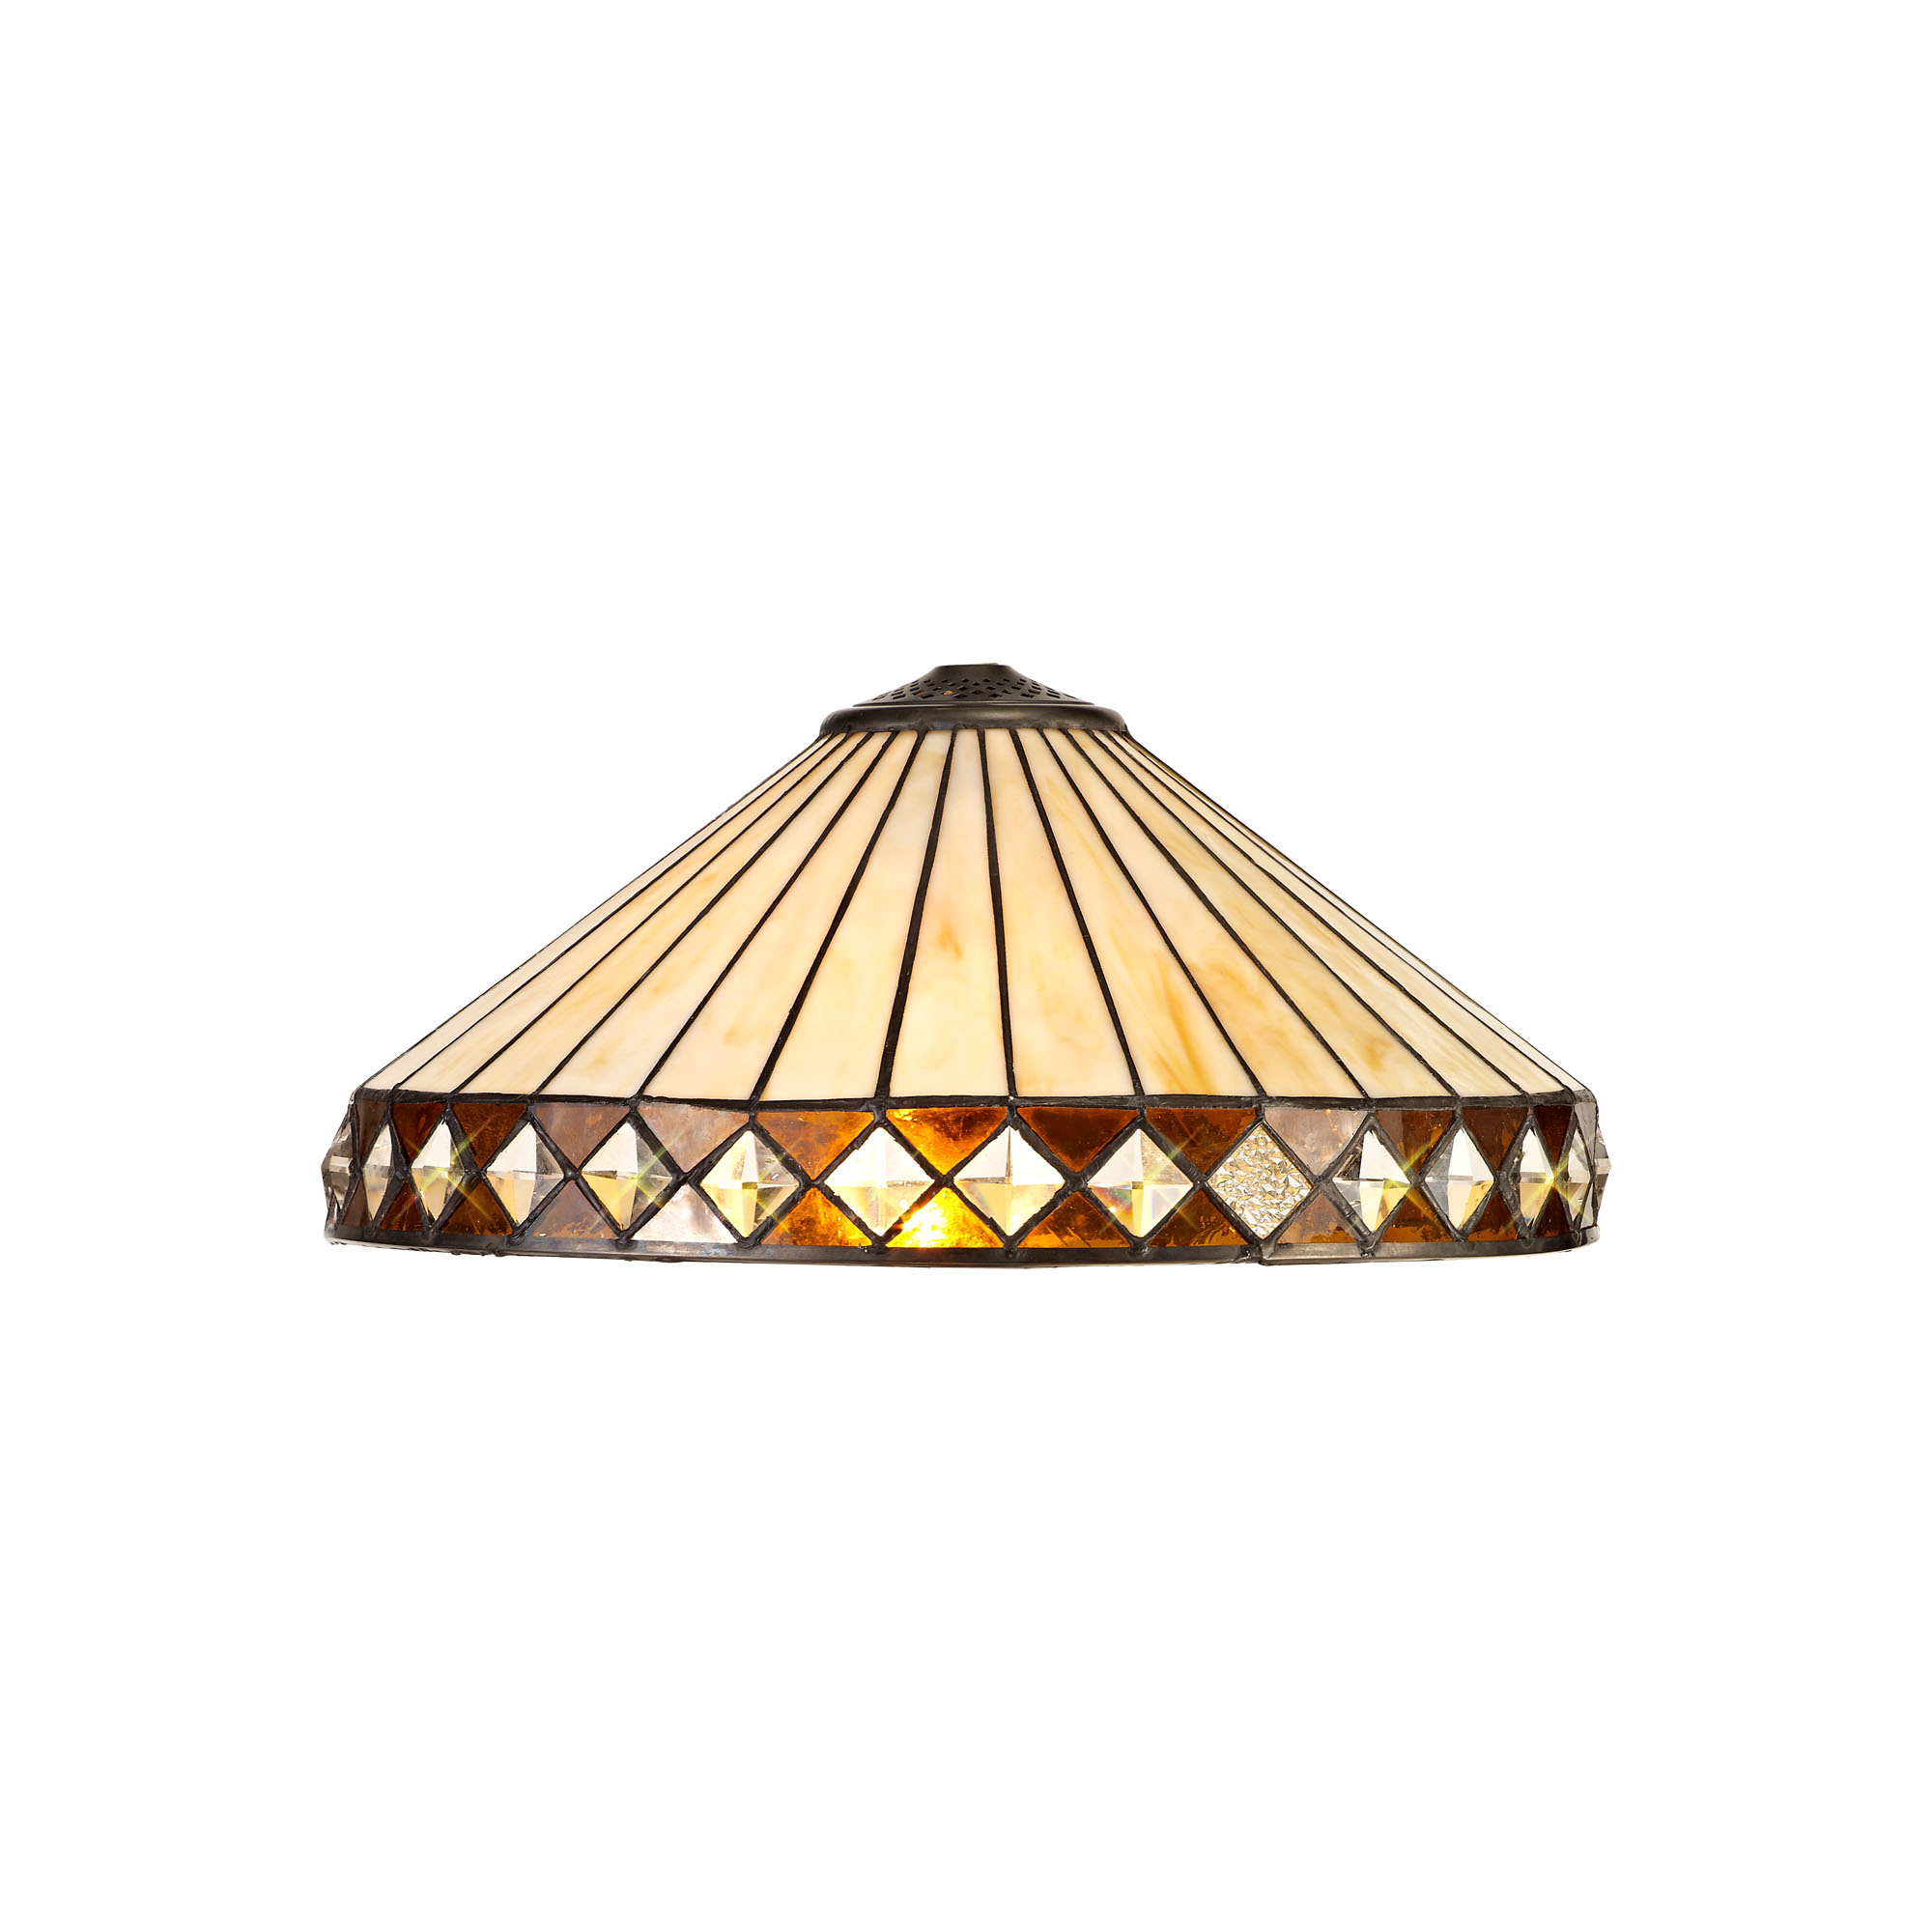 3 Light Uplighter Pendant E27 With 40cm Tiffany Shade, Amber/C/Crystal/Aged Antique Brass